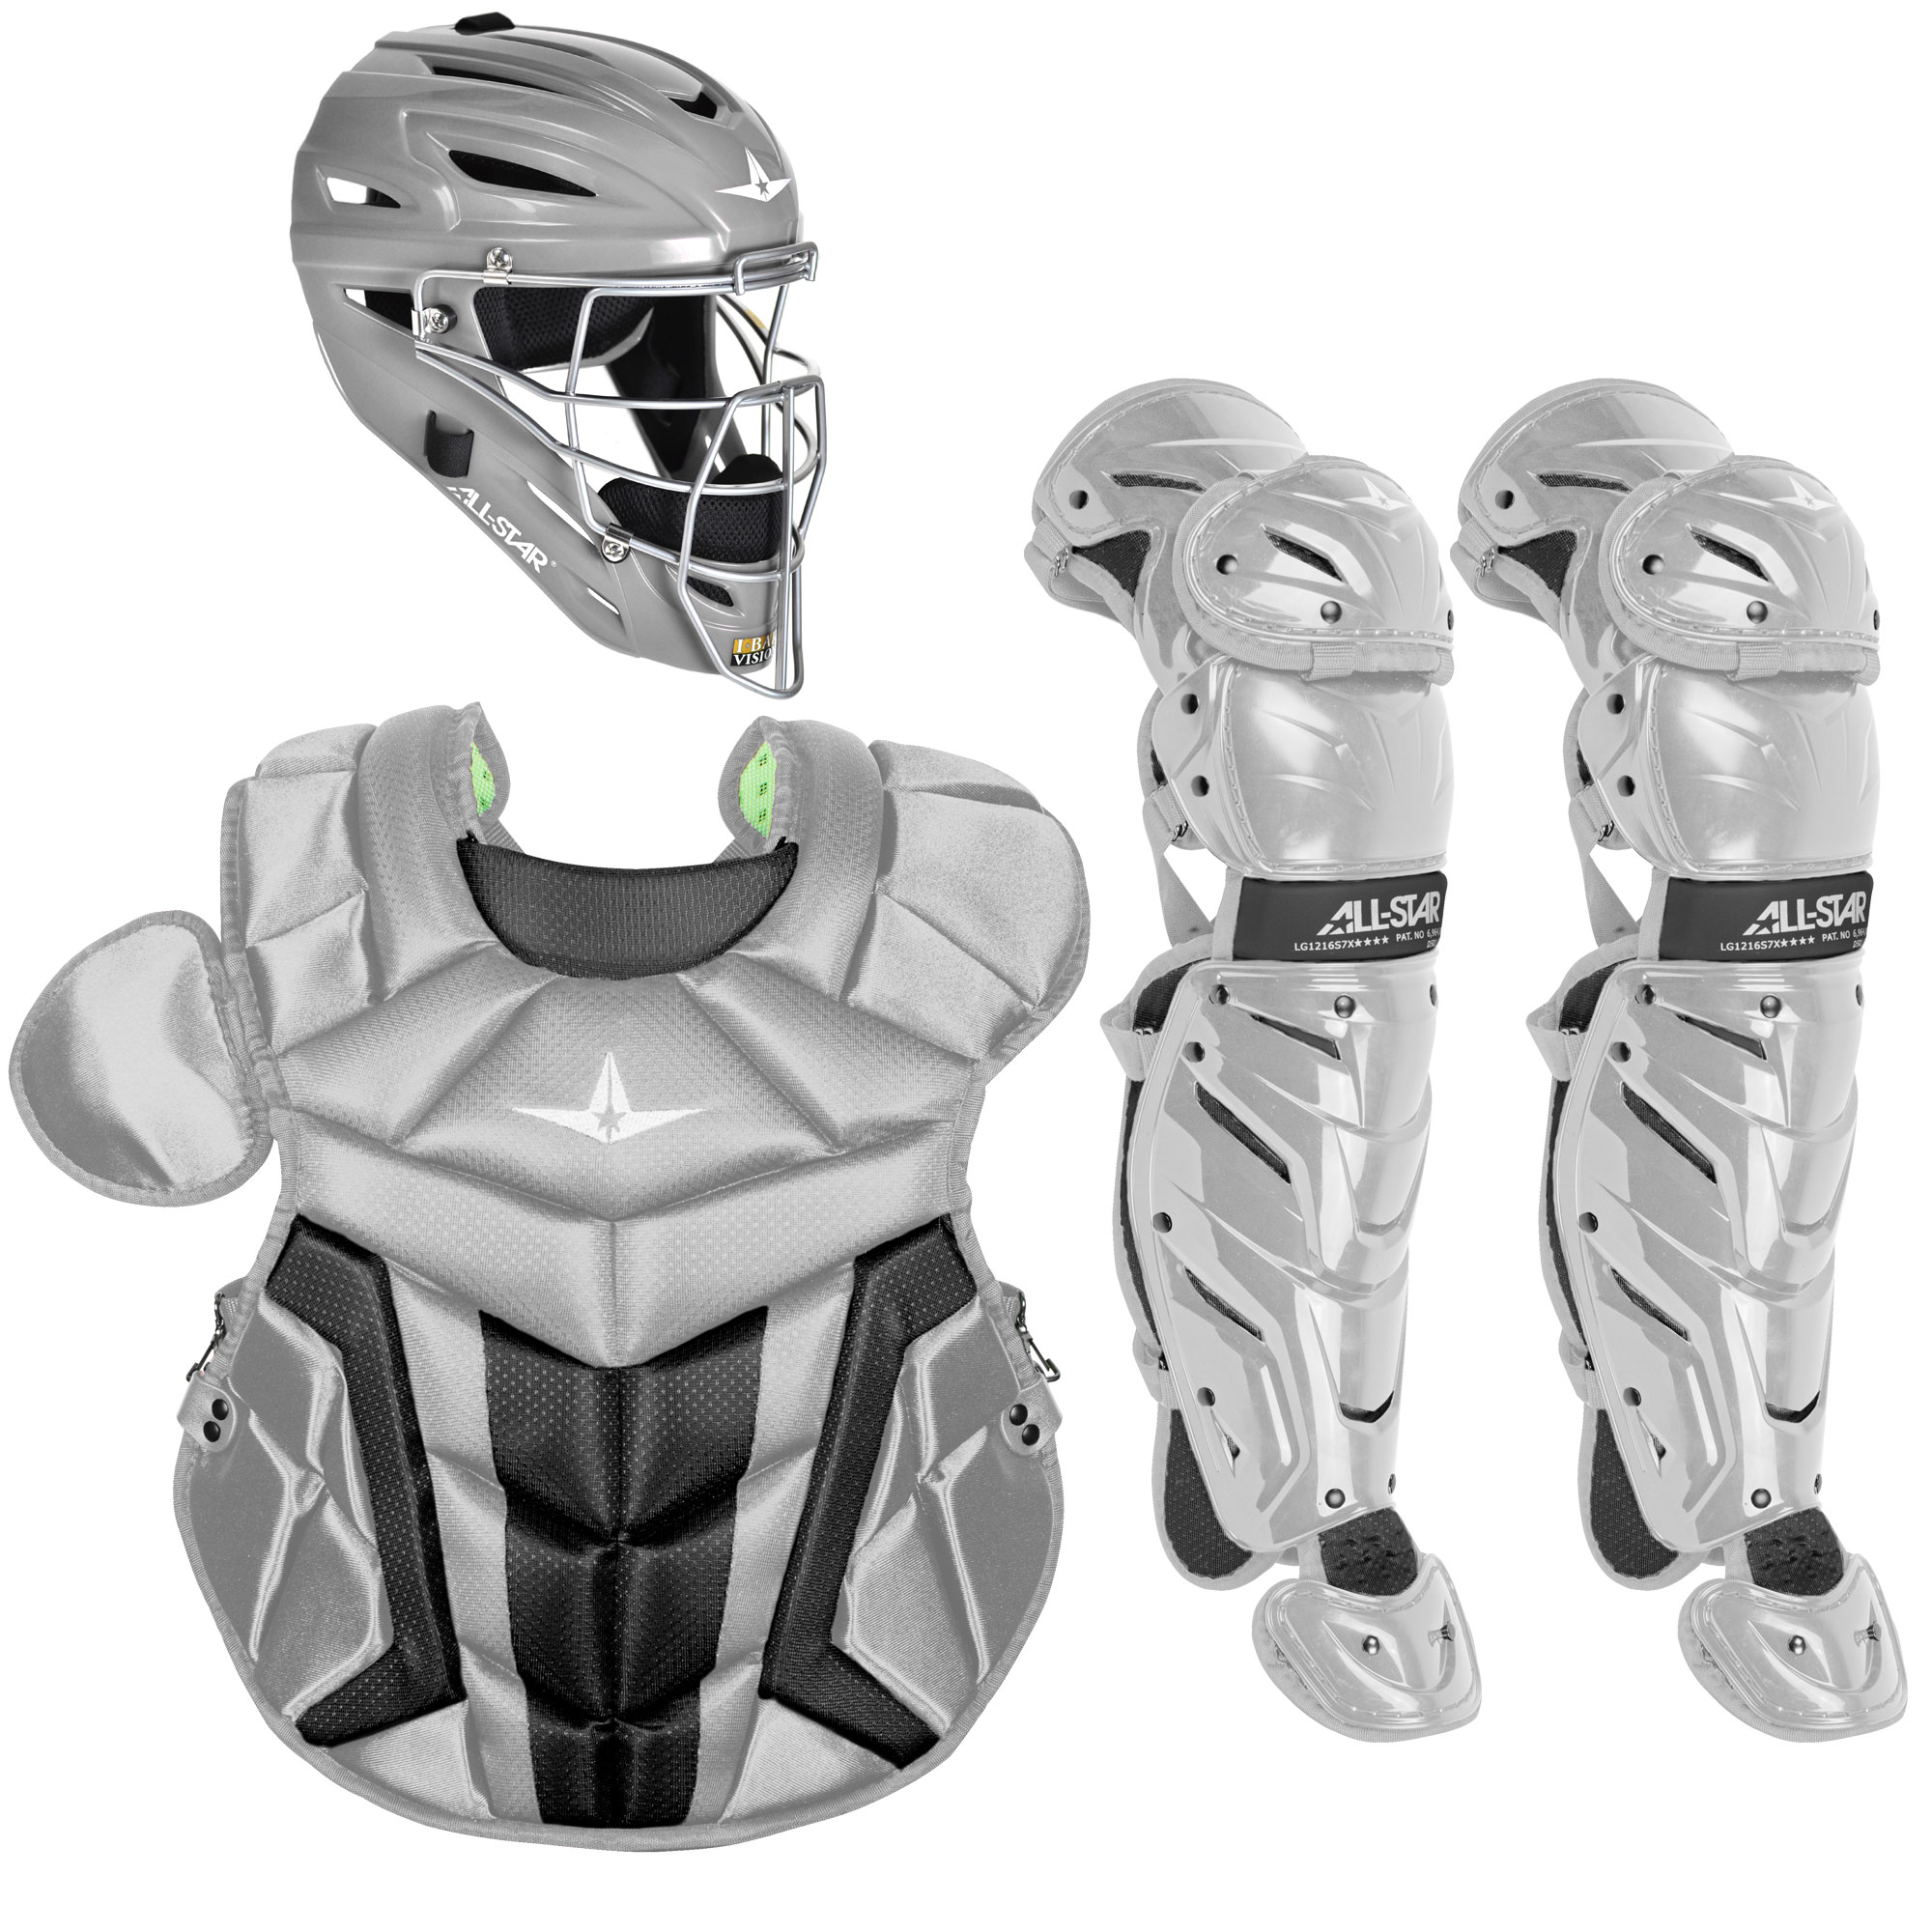 All-Star CP1216PS Player's Series Chest Protector